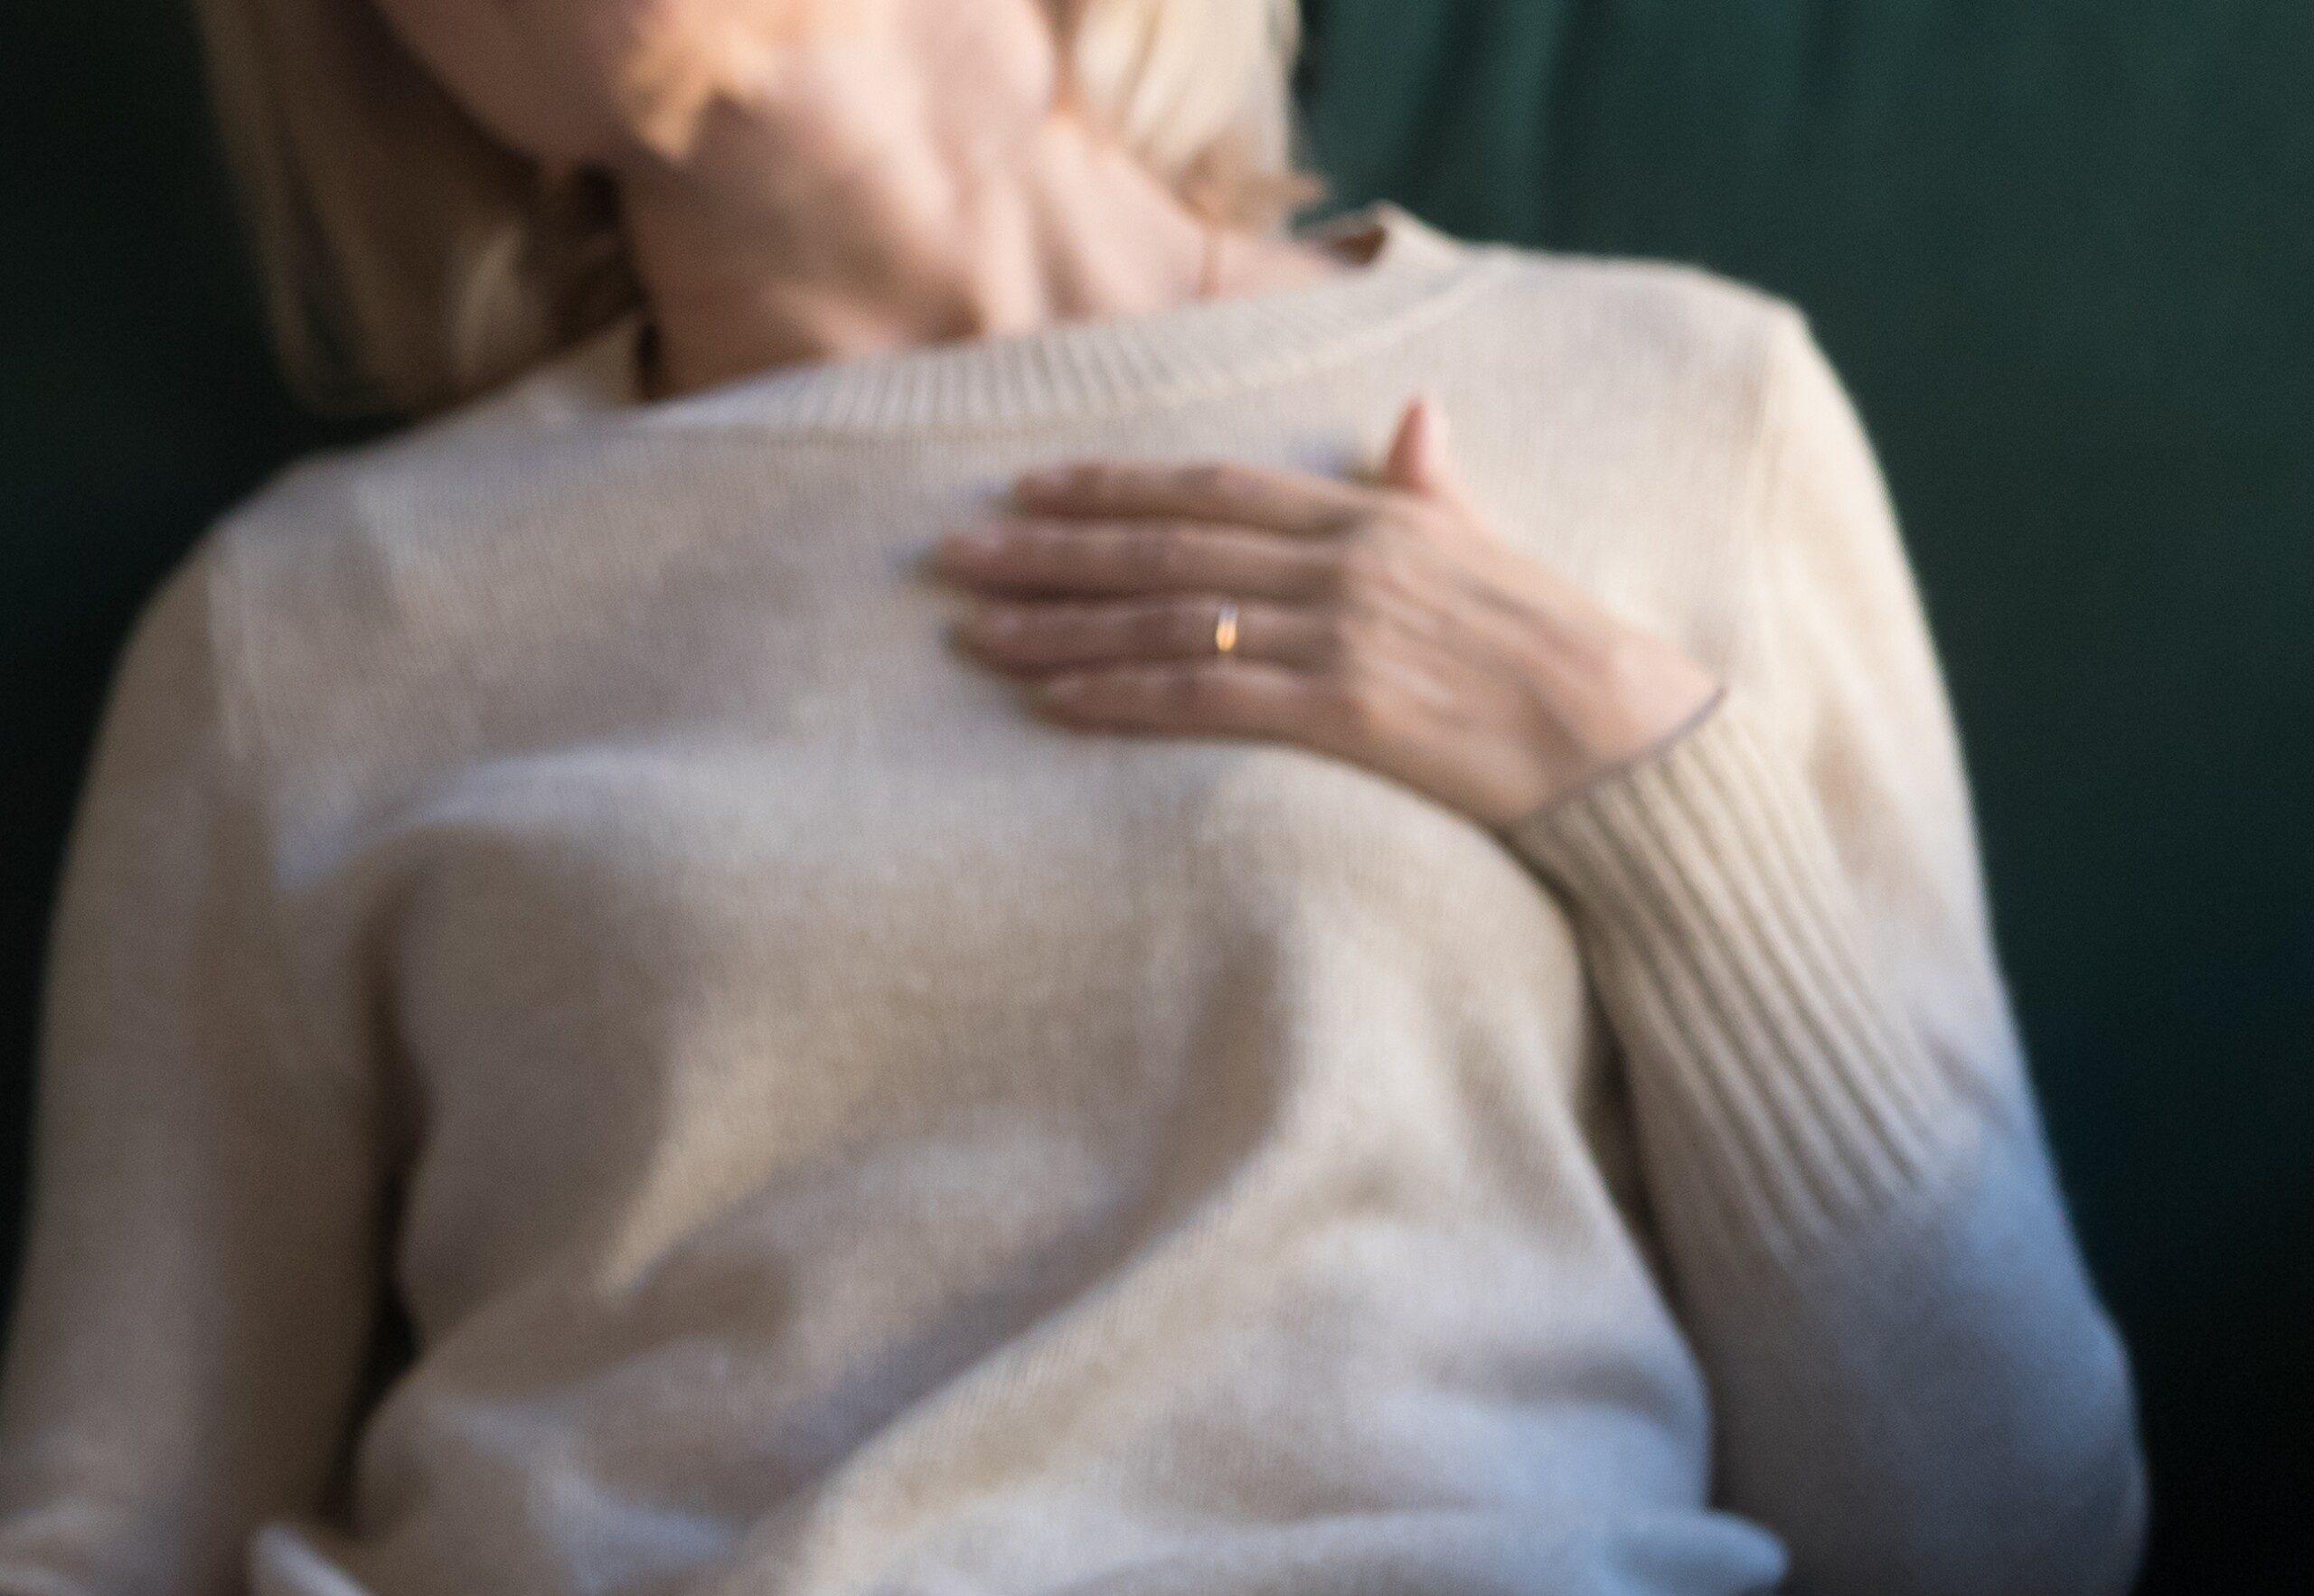 Can Pain in Chest Under Clavicle Be Esophageal Cancer?